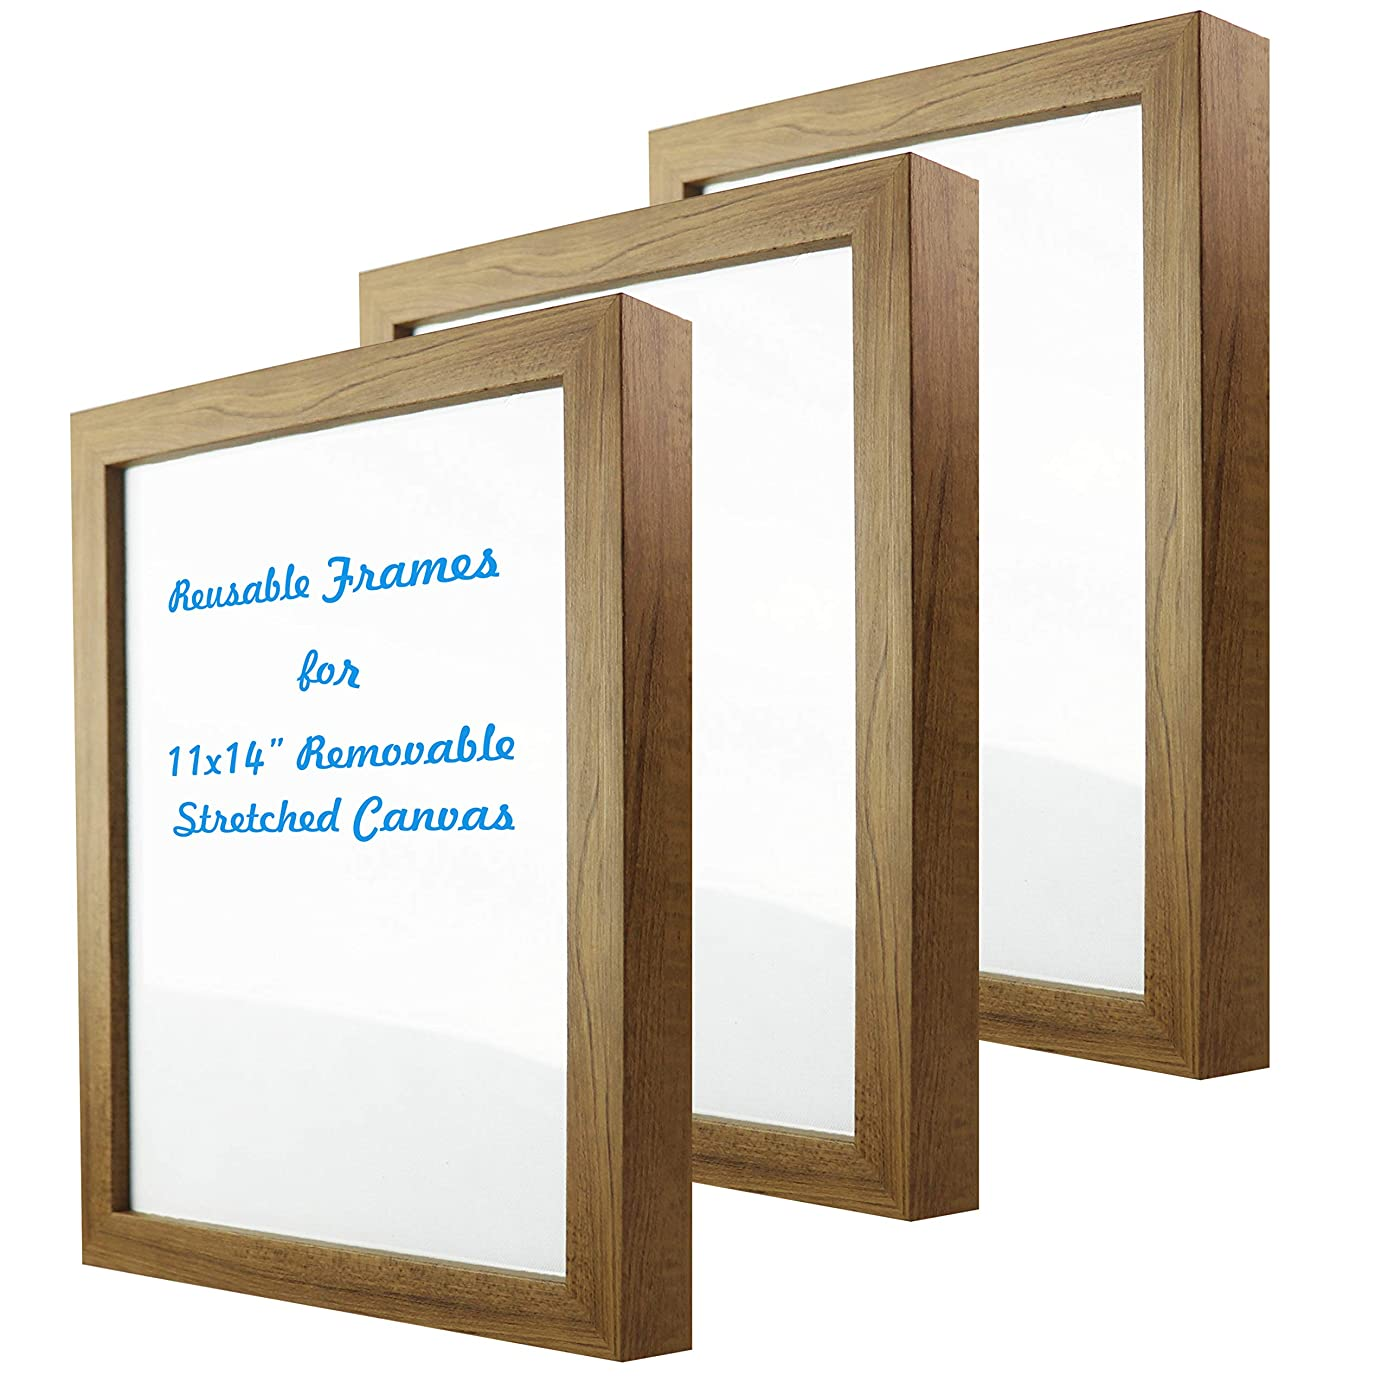 Natural art 11x14 Inch Removable Stretched Canvas with Reusable Frames Pack of 3 for Paintings Wood